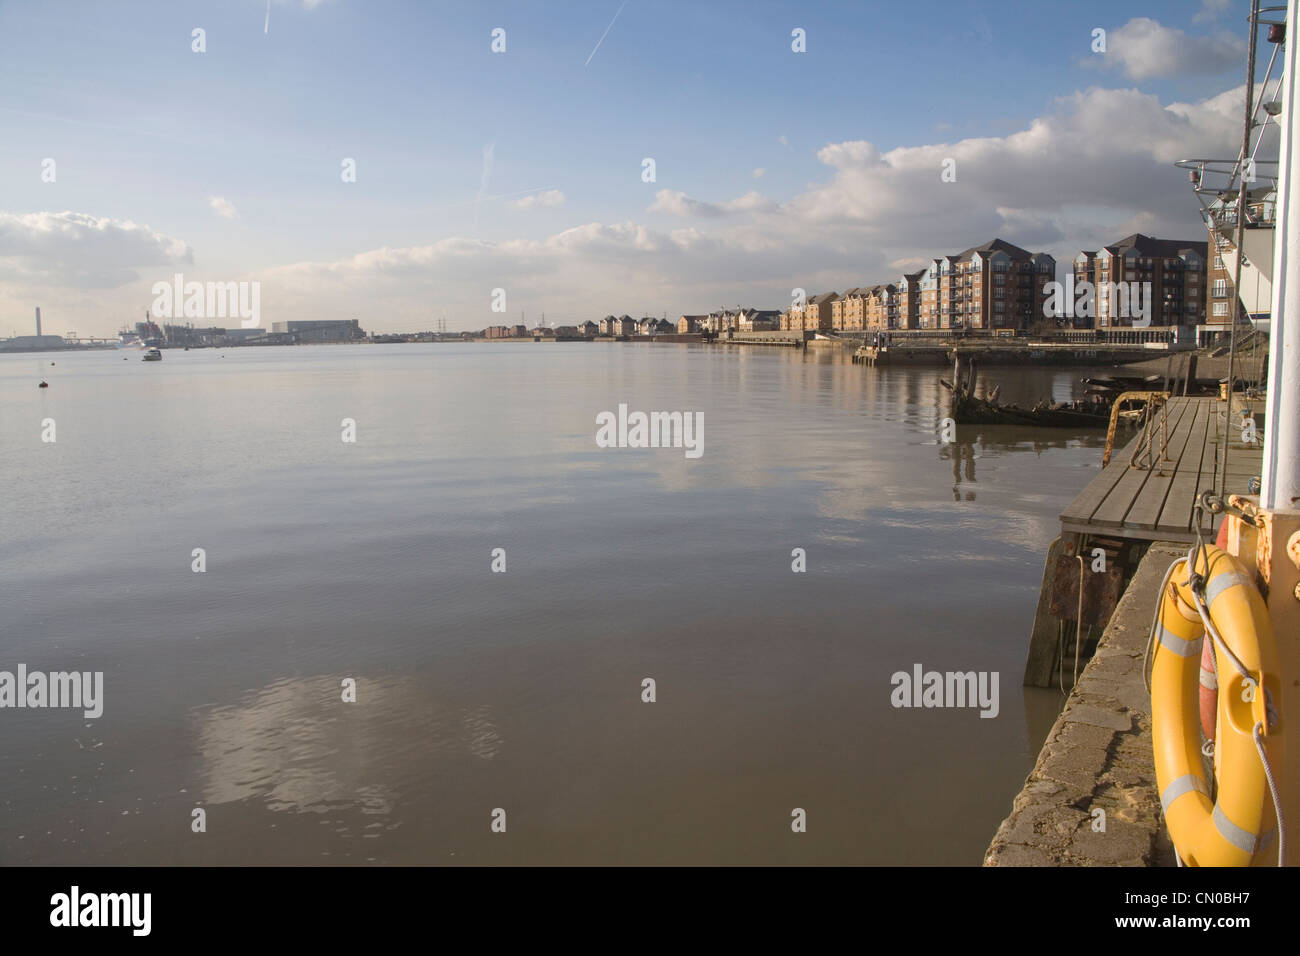 grays on the north bank or the thames in London - Stock Image